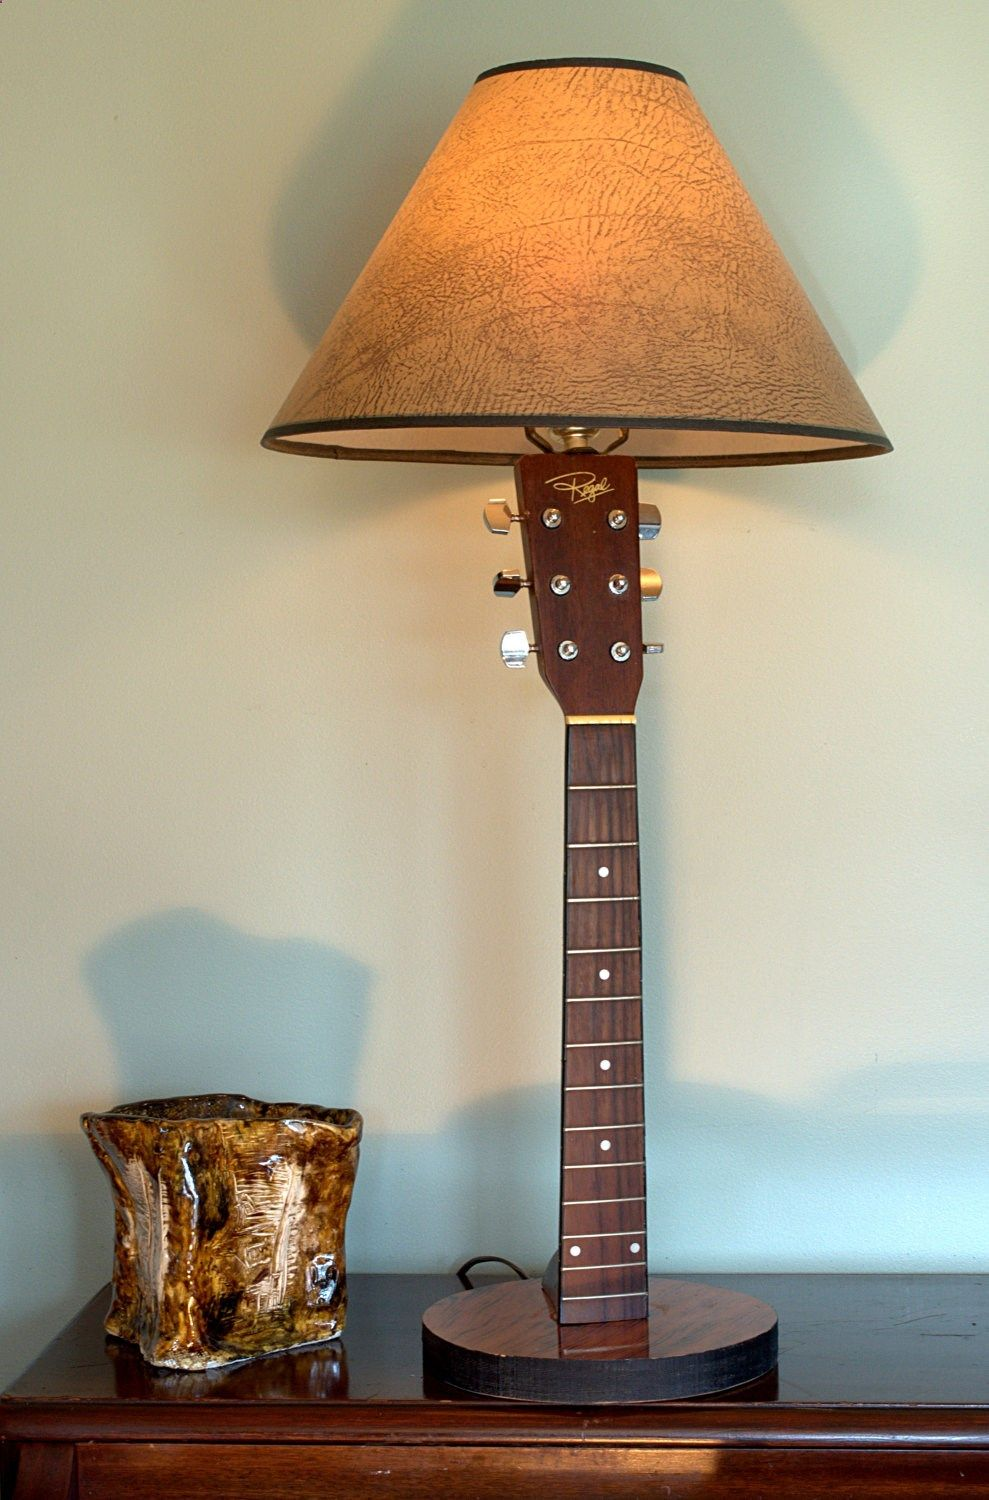 Acoustic guitar lighting lamps wall lamps floor lamps bedsides acoustic guitar lighting lamps wall lamps floor lamps bedsides lamp table lamps pendant lamps chandeliers furniture design decor makeover aloadofball Images